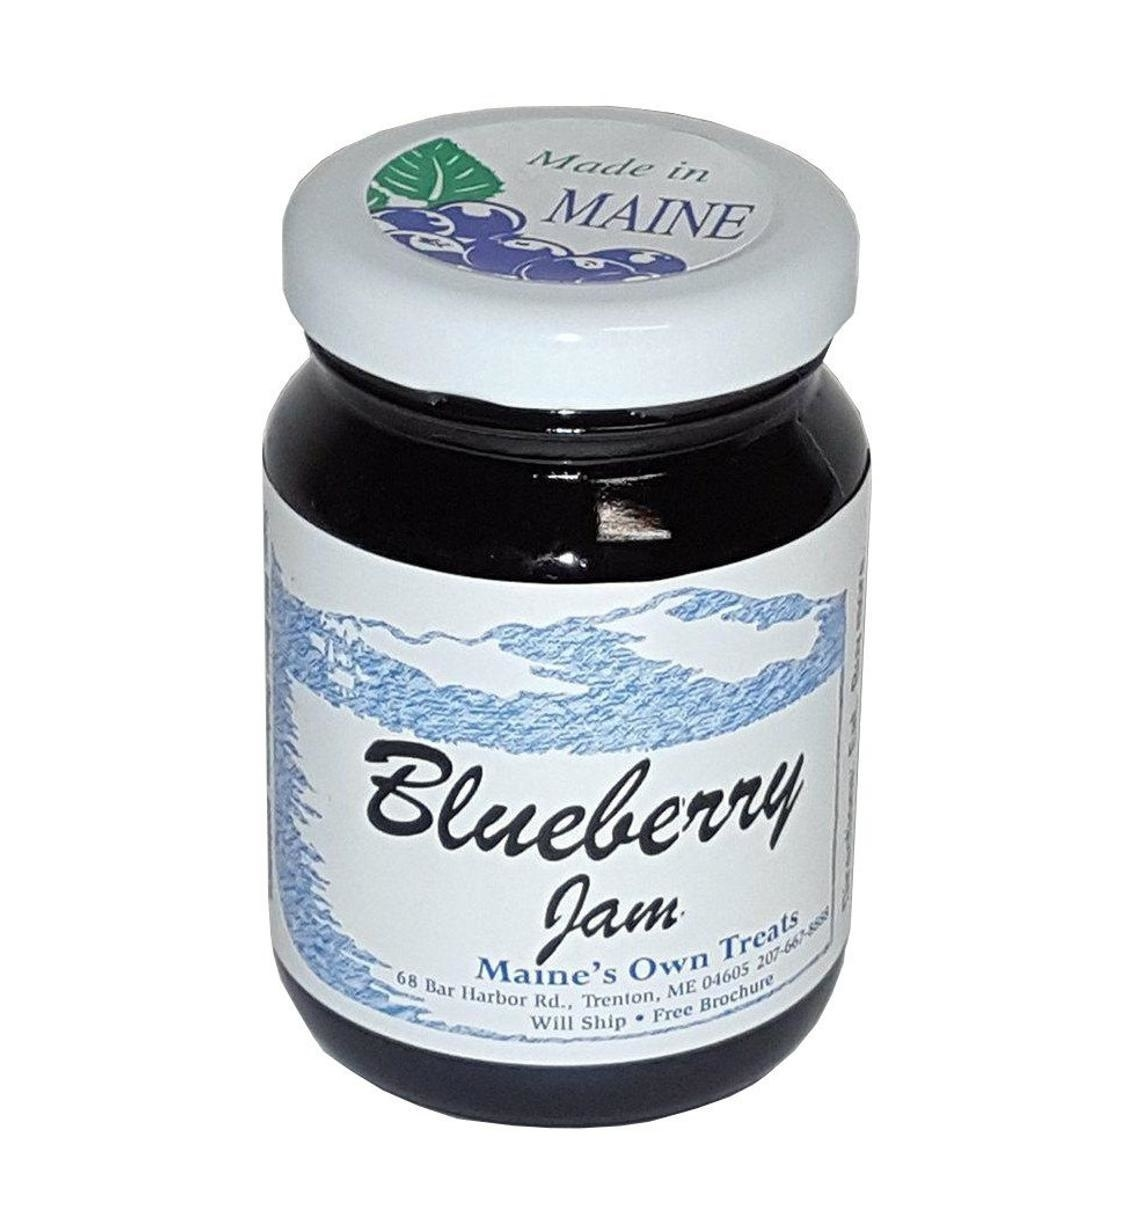 A jar of Maine blueberry jam in a pretty jar with a blue and white label.